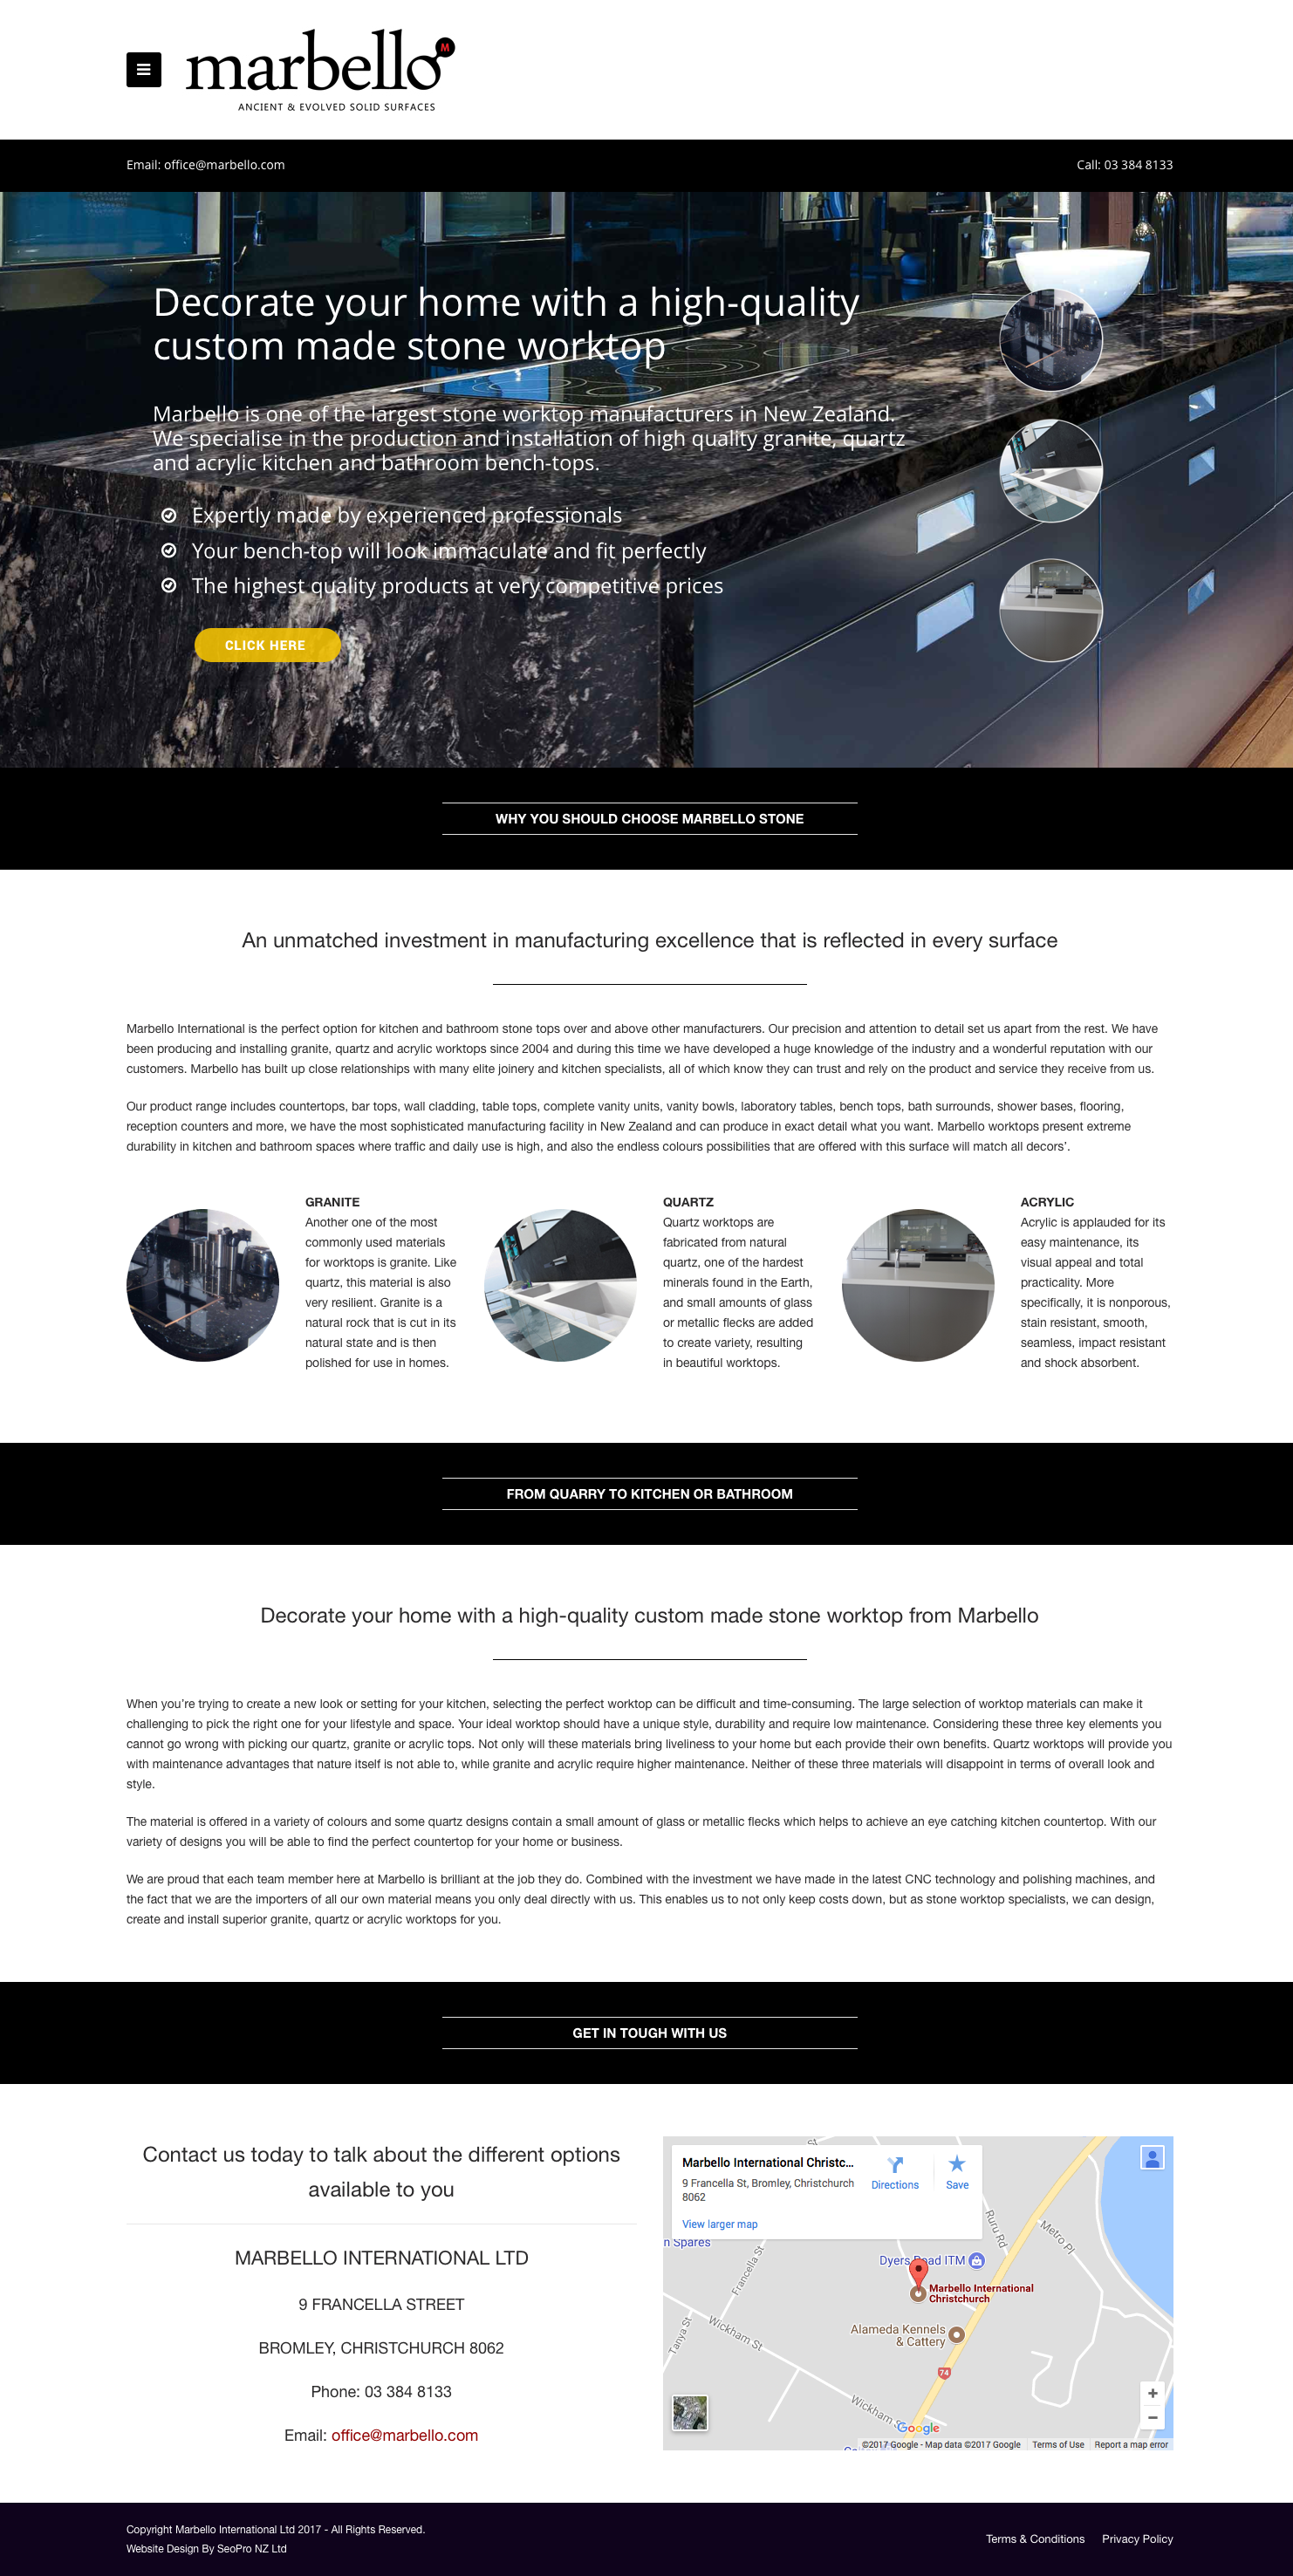 Design For A Stone Worktops Company In 2020 Digital Marketing Company Web Design Digital Marketing